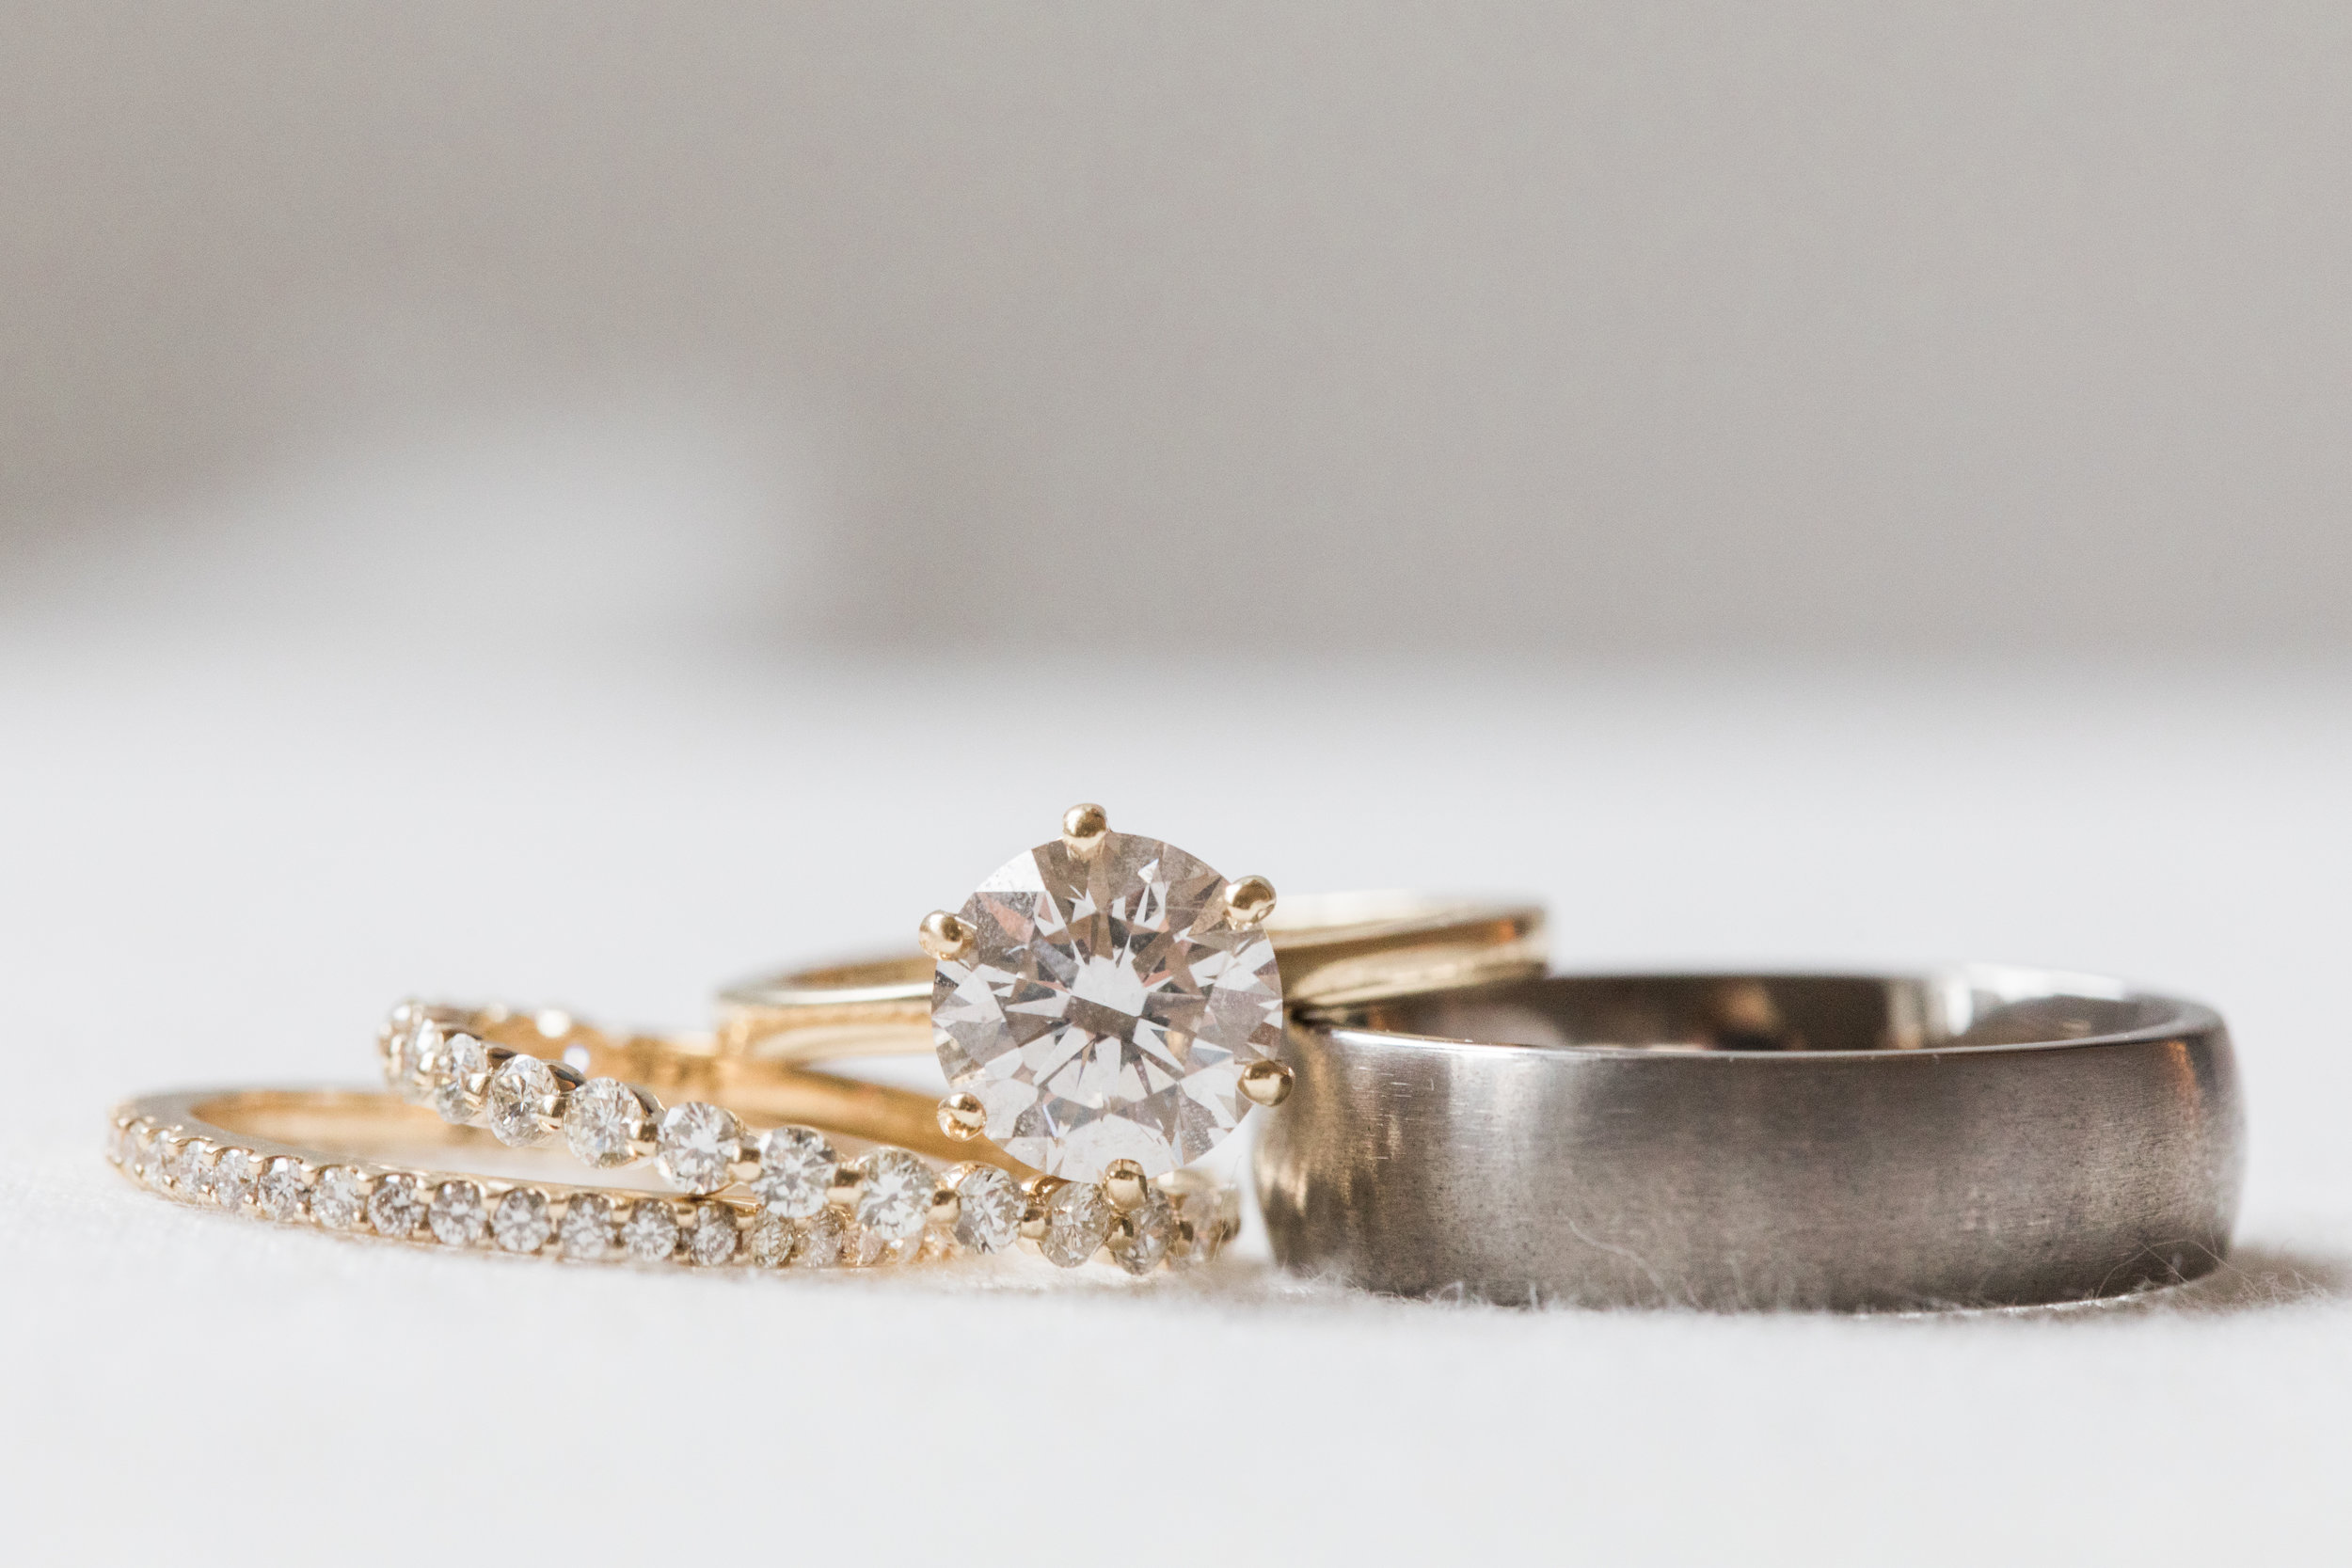 Classic, gold engagement ring and wedding bands.